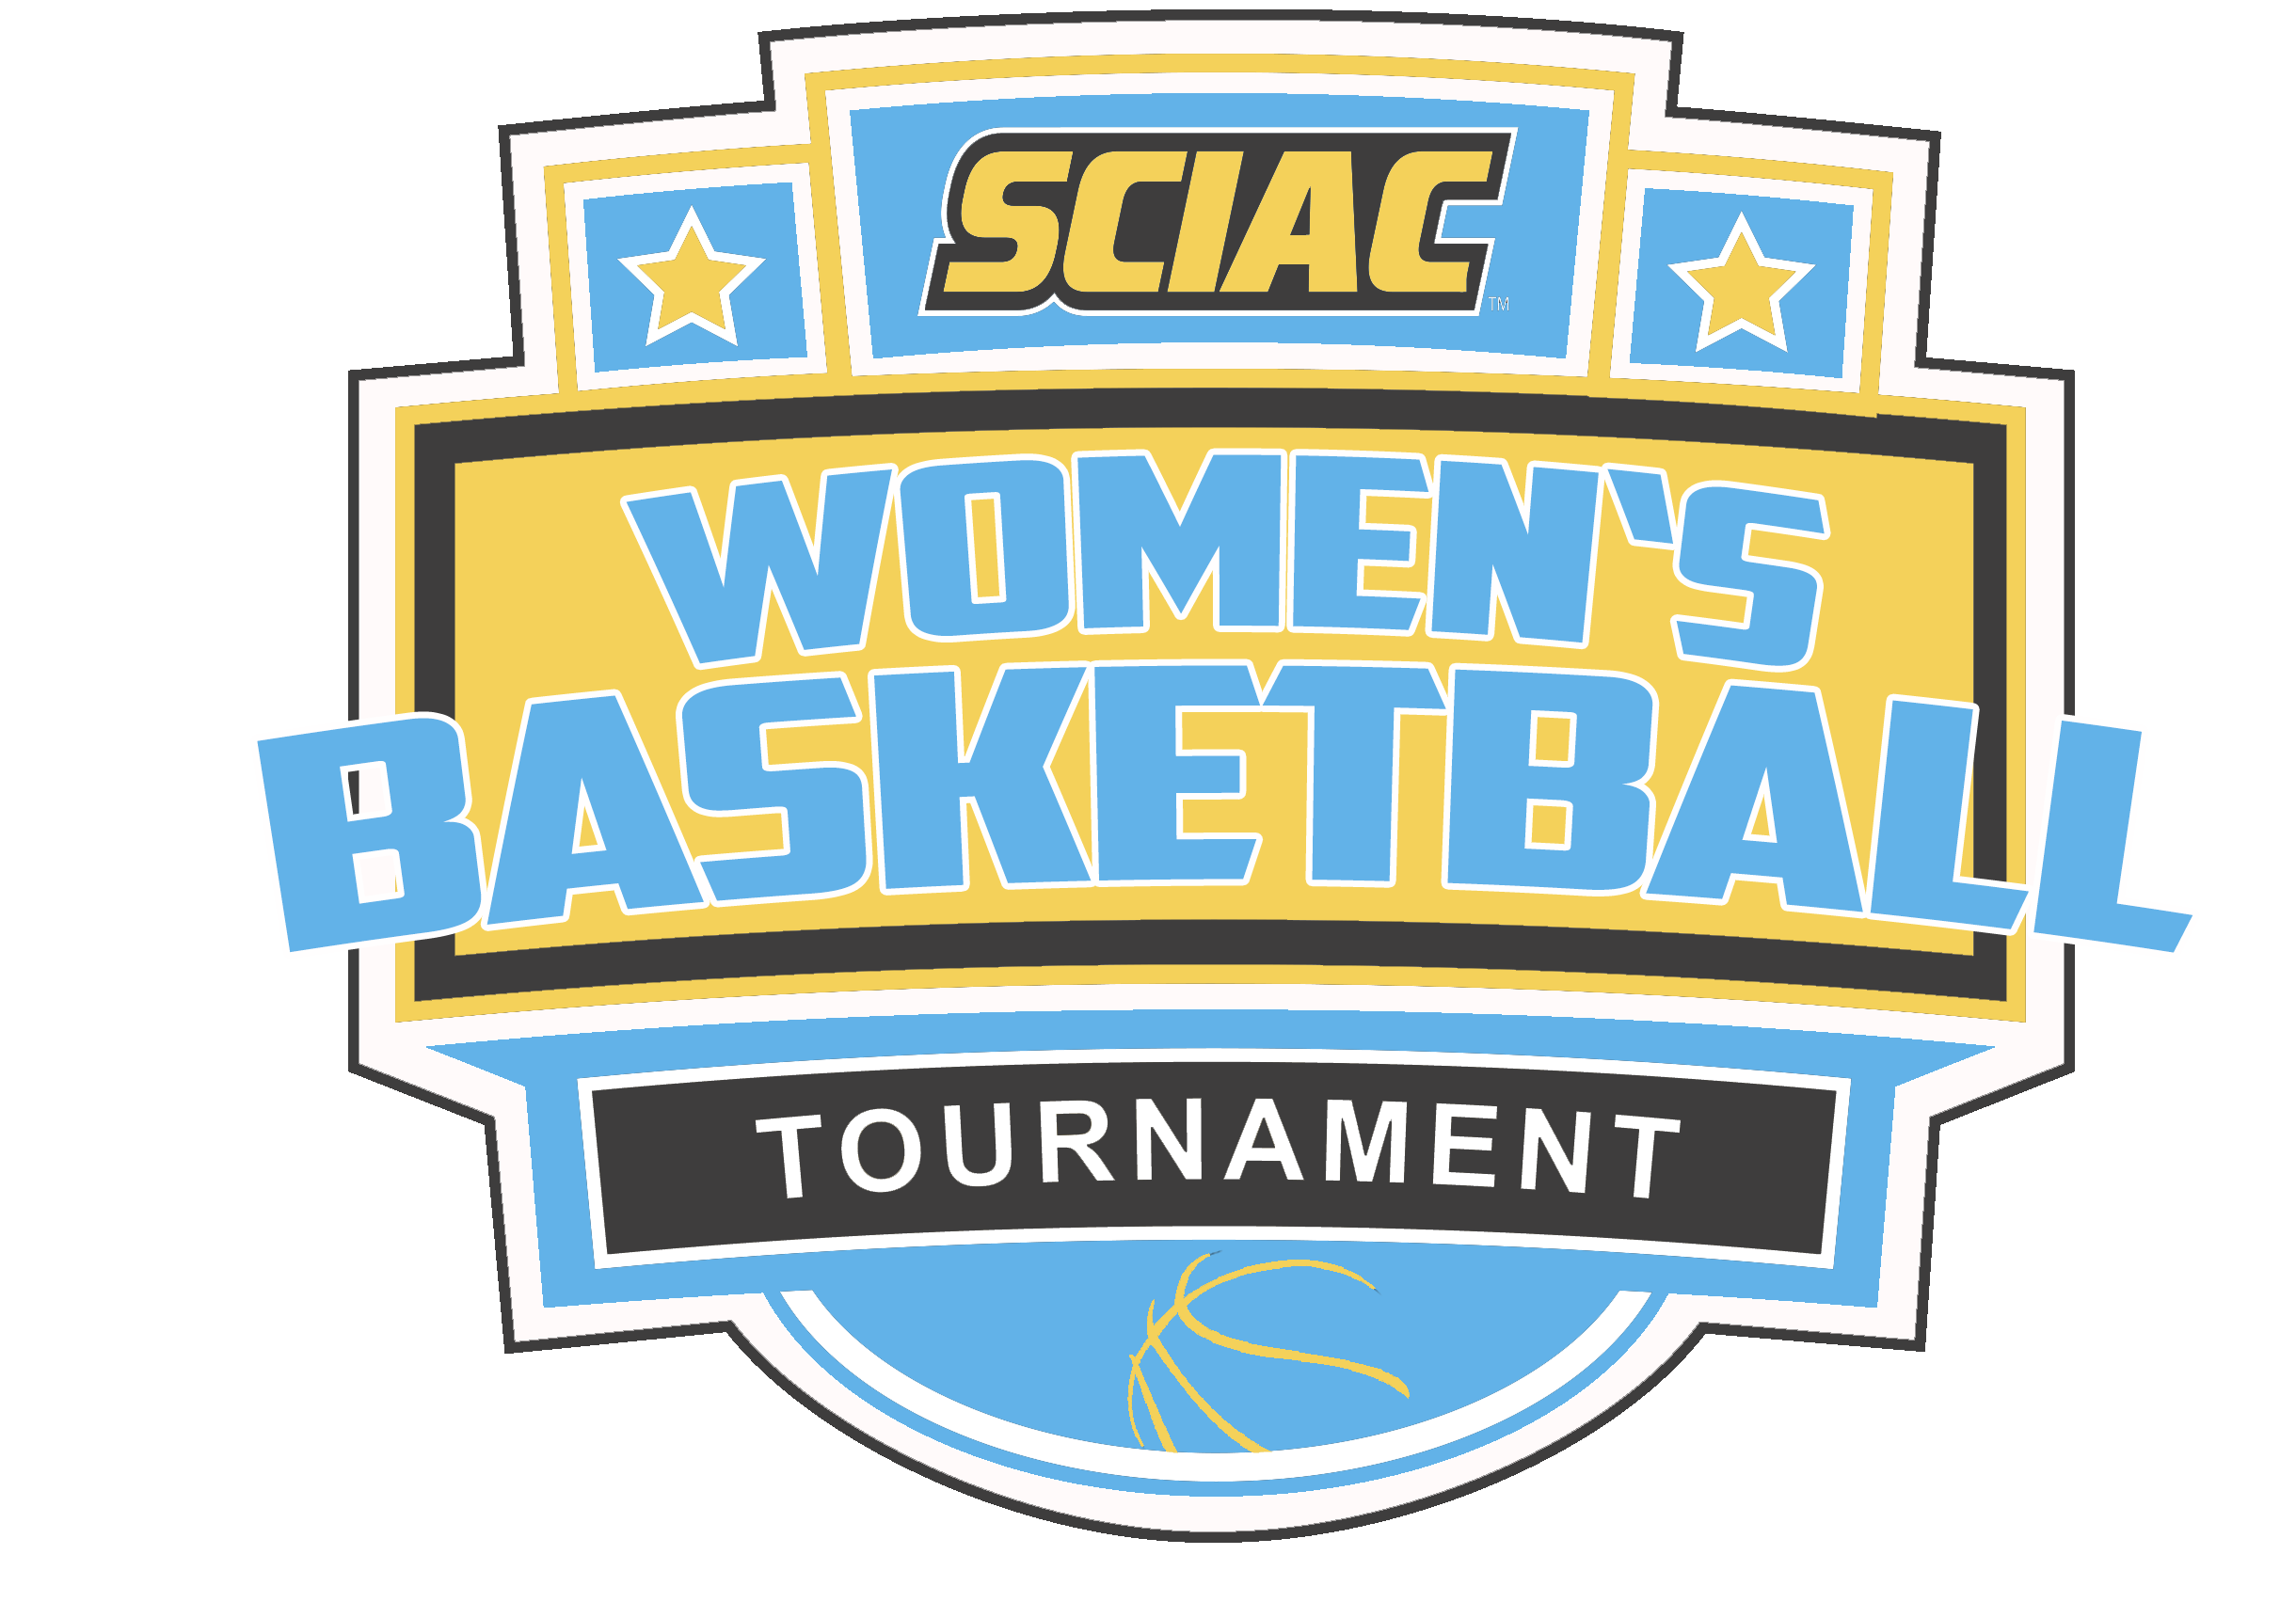 2017 SCIAC Women's Basketball Tournament Central